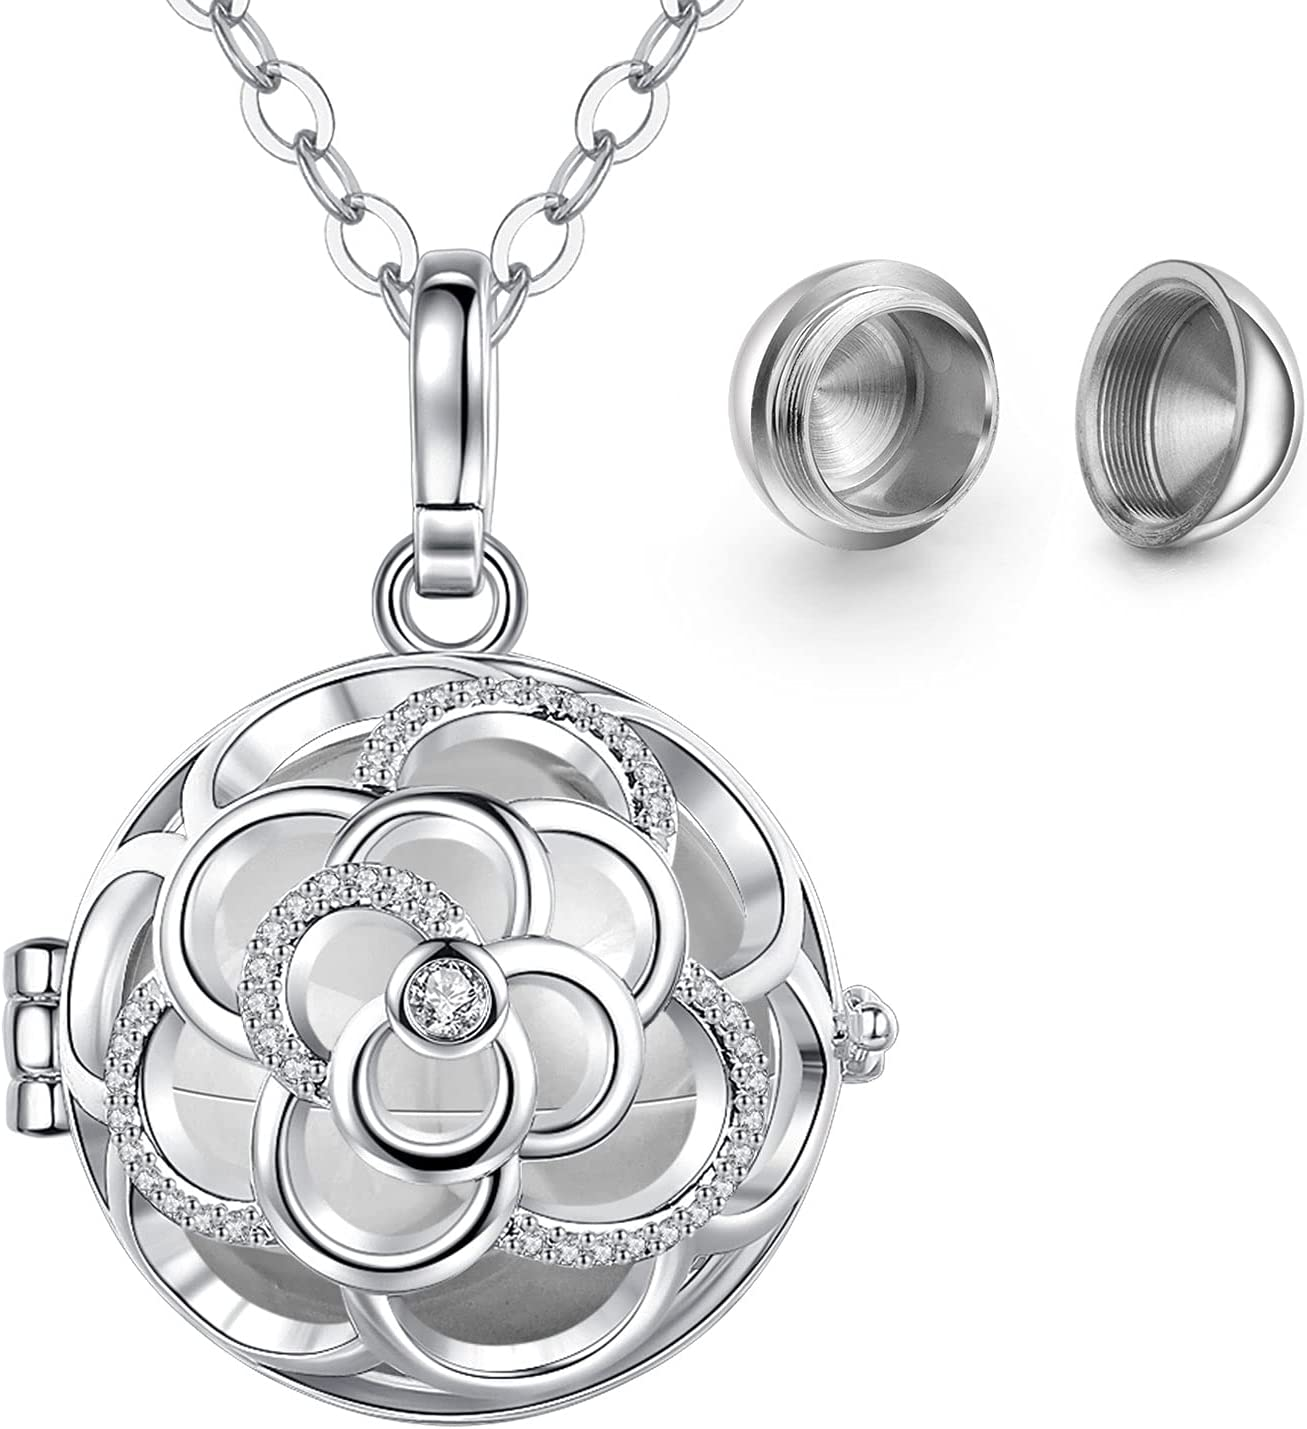 NFUSEU Dainty Urn Necklace for Ashes for Women Teen Girls, Pet Human Cremation Jewelry Memorial Keepsake Small Rose Flower Pendant and 24 Inch Chain